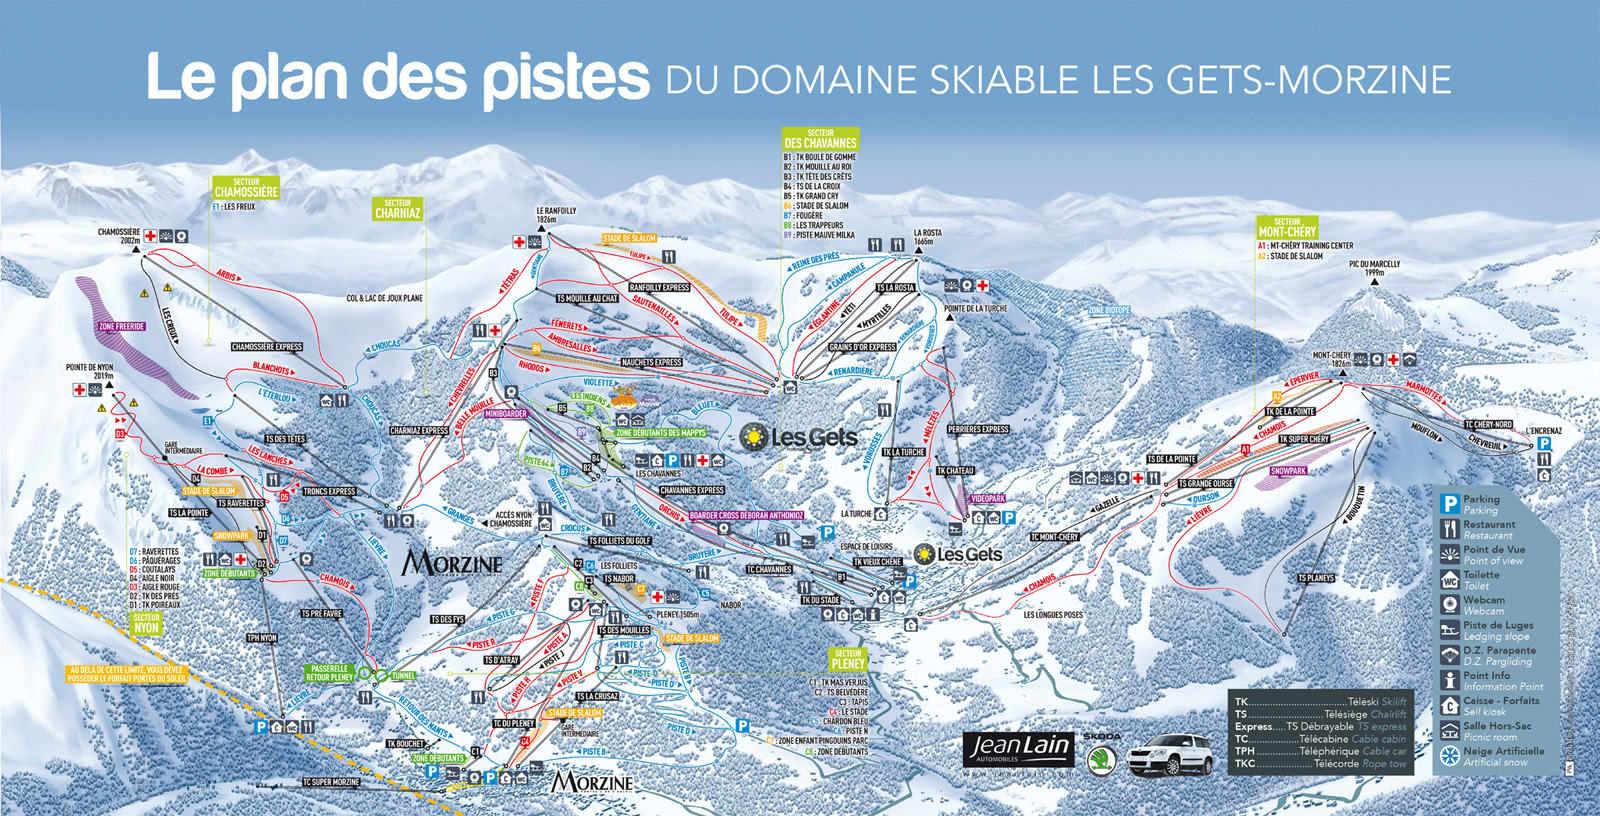 ski resorts in oregon map with Morzine on Trail Map further Luxury How Many Ski Resorts In Washington State besides New H shire 4000 Footers Poster Map moreover Lake Tahoe Ski Resorts Map Poster together with Adirondack High Peaks Map 18x24 Poster.